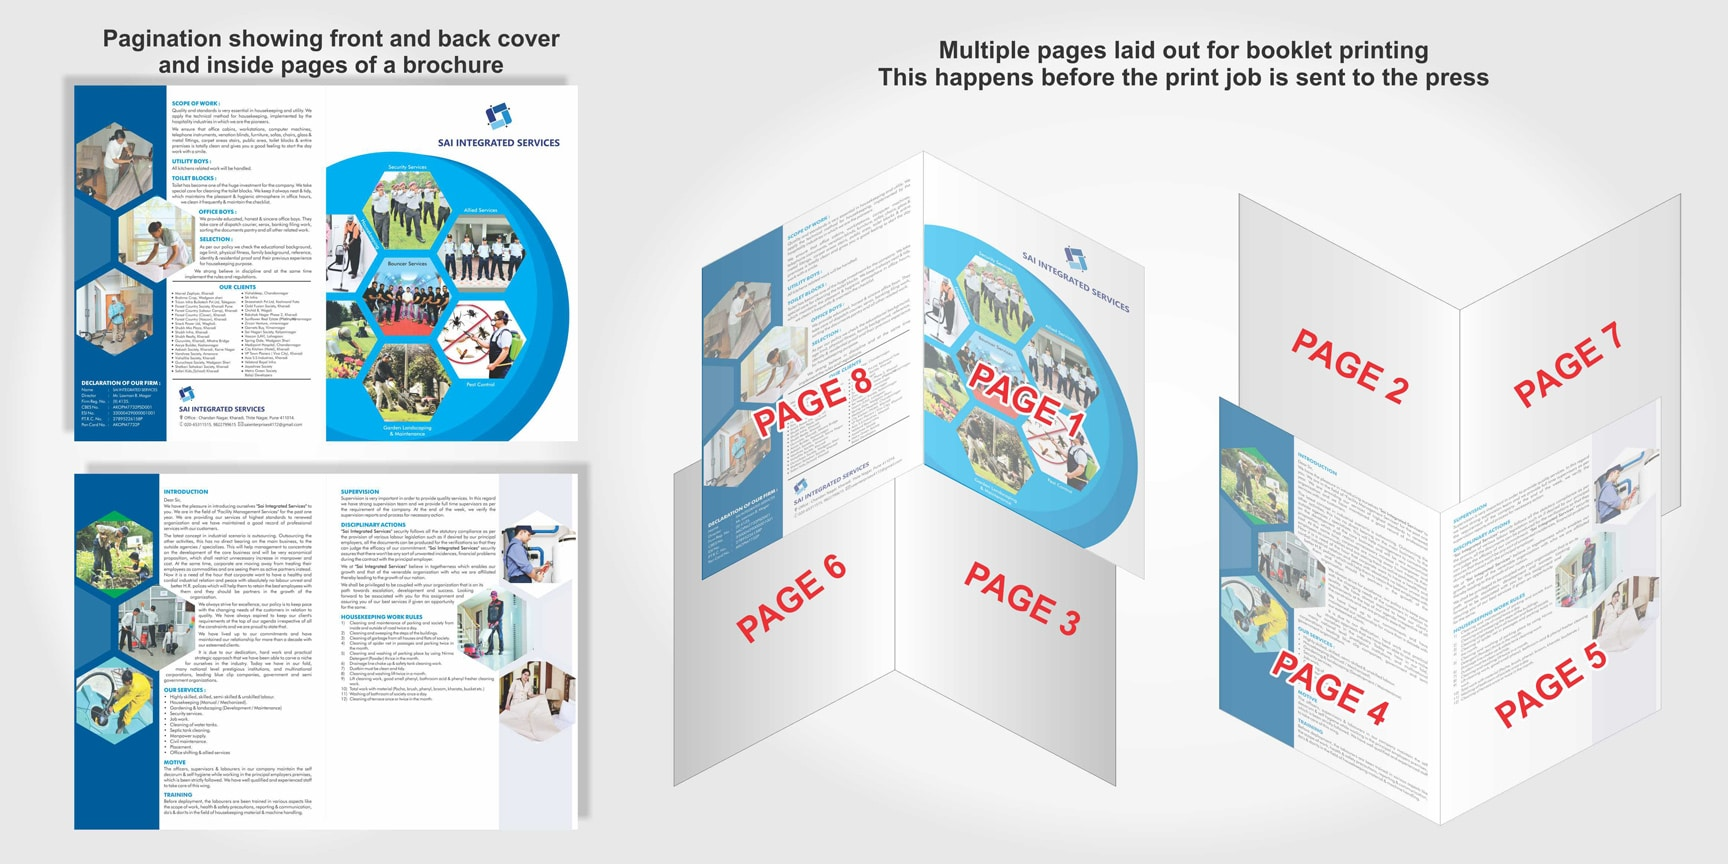 sequential pages are paginated and laid out as a booklet for brochure printing